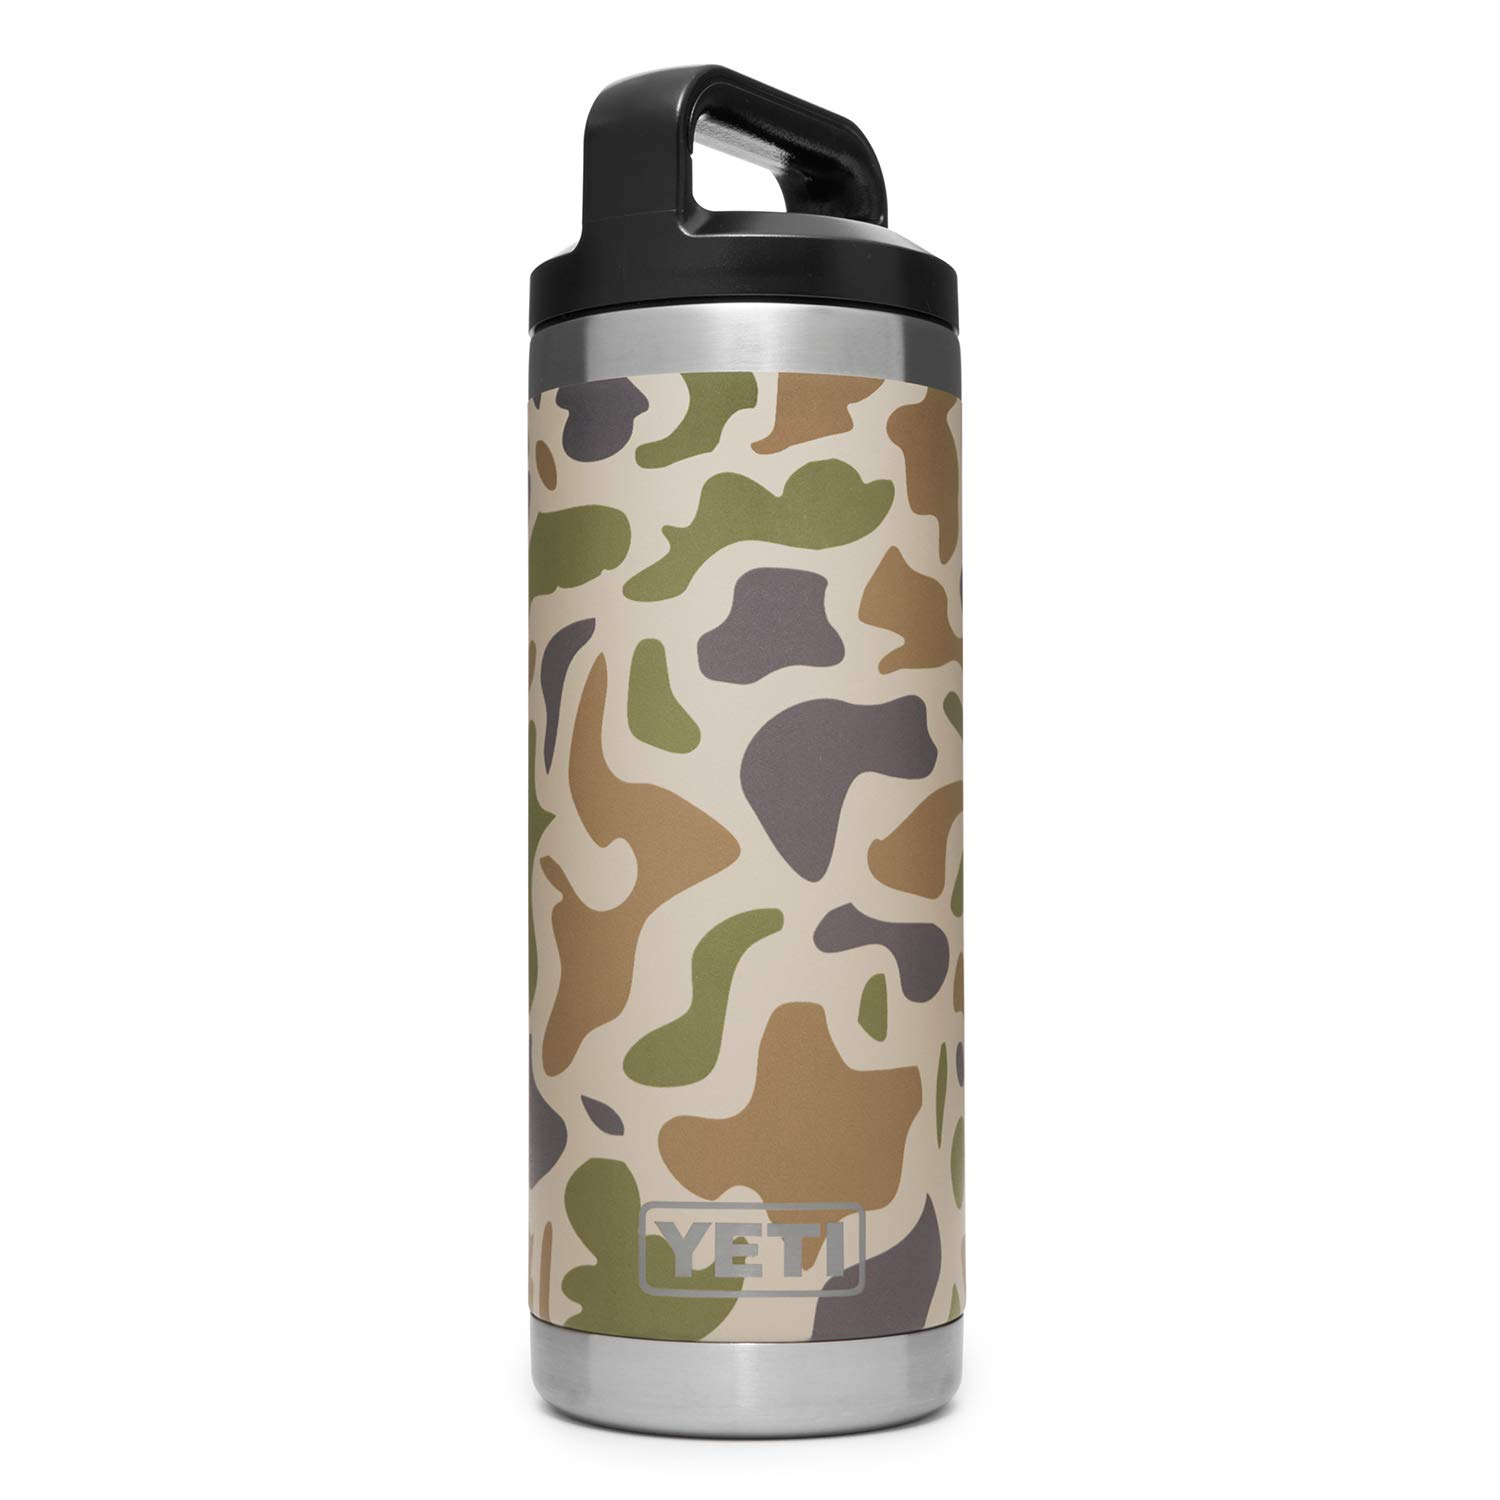 YETI Rambler 18 oz Vacuum Insulated Stainless Steel Bottle Cap, Camo